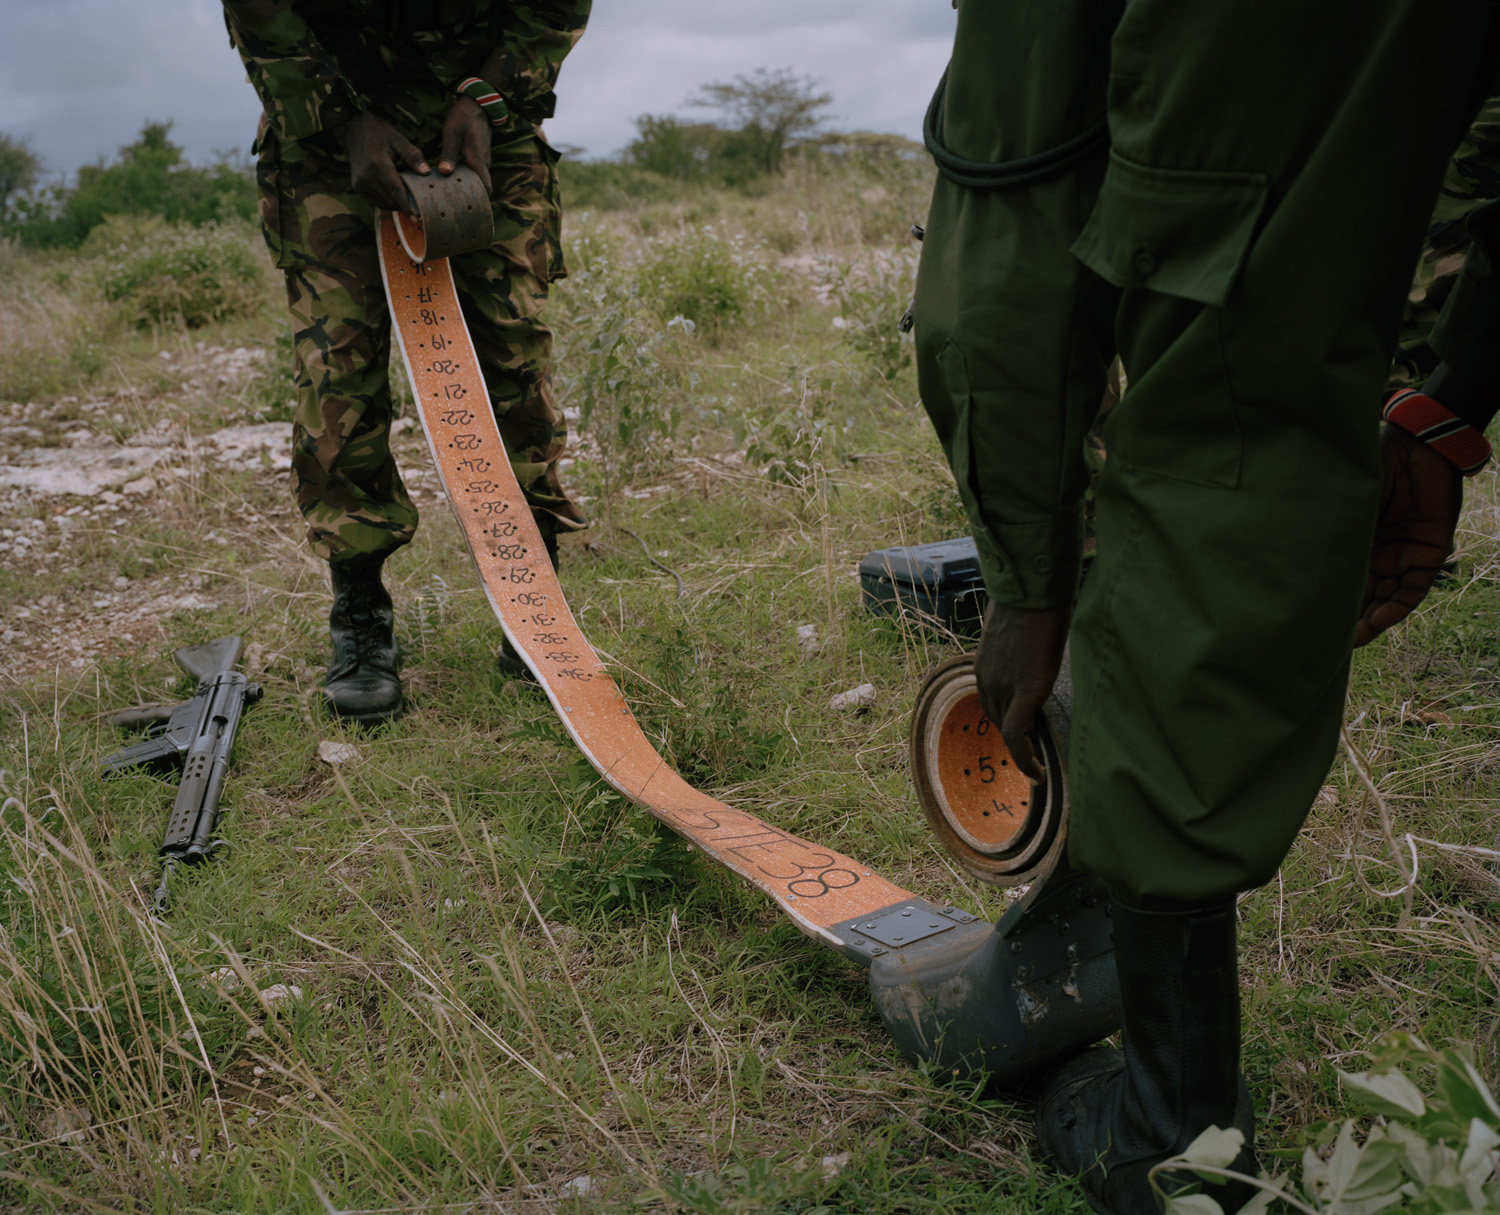 An elephant satellite tracking collar is prepared by rangers at the Sera Community Conservancy in northern Kenya. The collar will be fitted to a lone bull elephant, supplying scientists with a detailed plan of his migration. It will also be used to monitor his well being as he travels through areas rife with poaching.